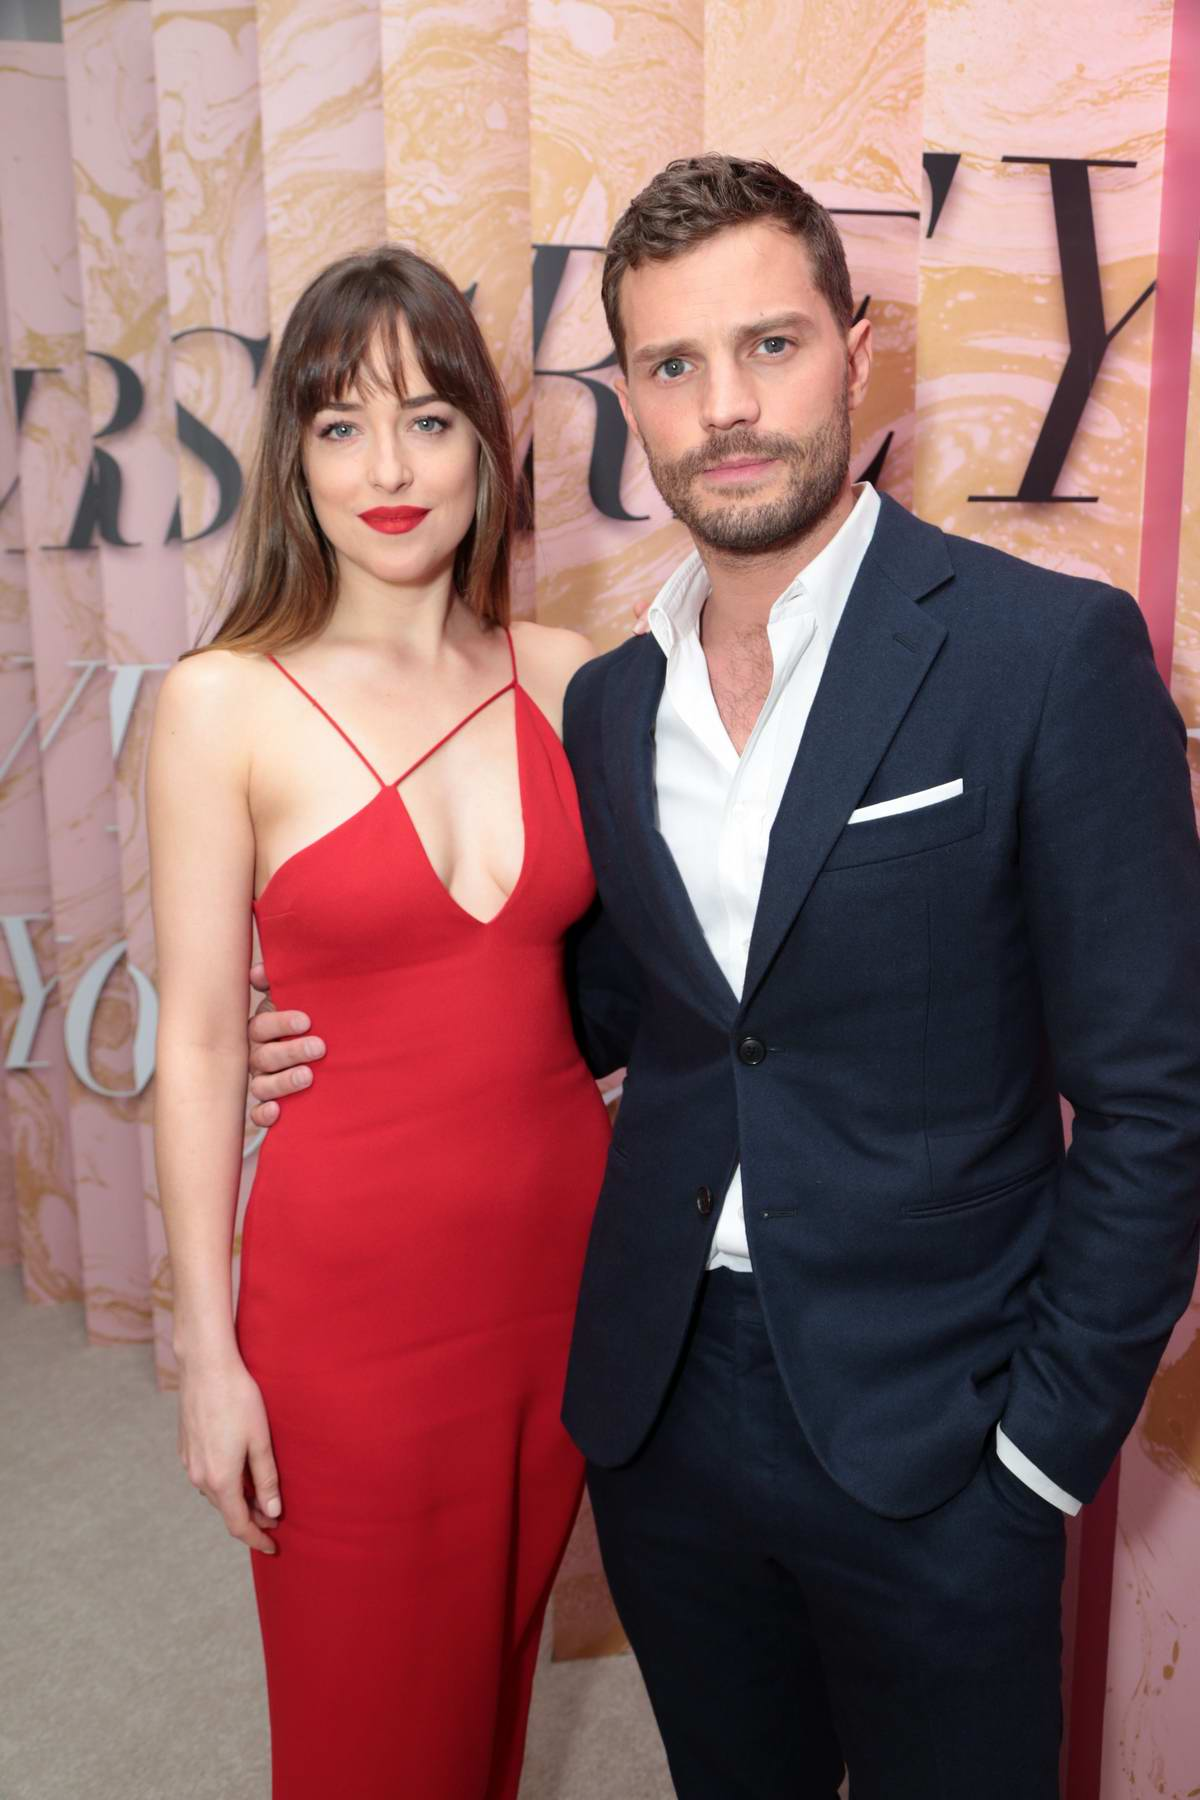 Dakota Johnson and Jamie Dornan attends 'Fifty Shades Freed premiere in Los Angeles